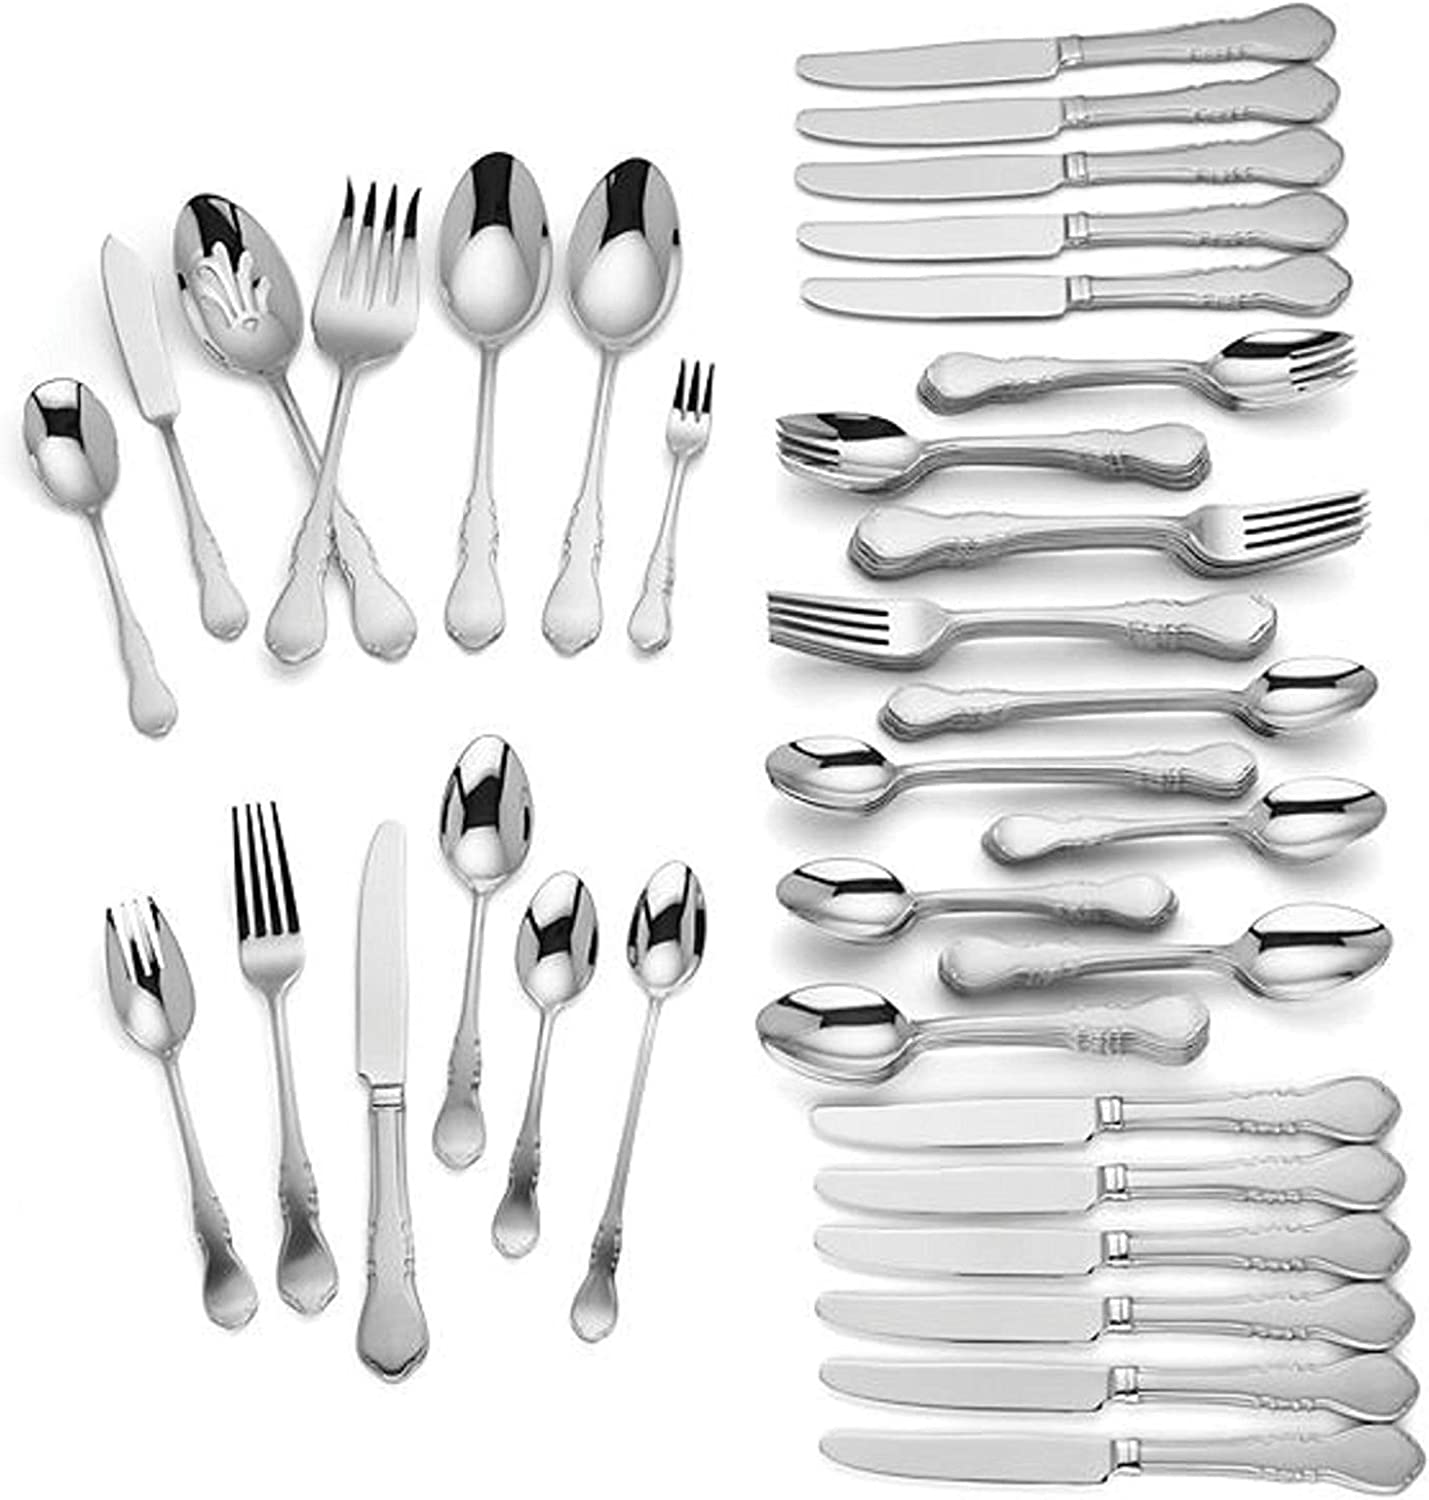 Lenox Wescott 82 Piece Flatware Set Service For 12 Stainless Steel 18 10 includes Hostess set